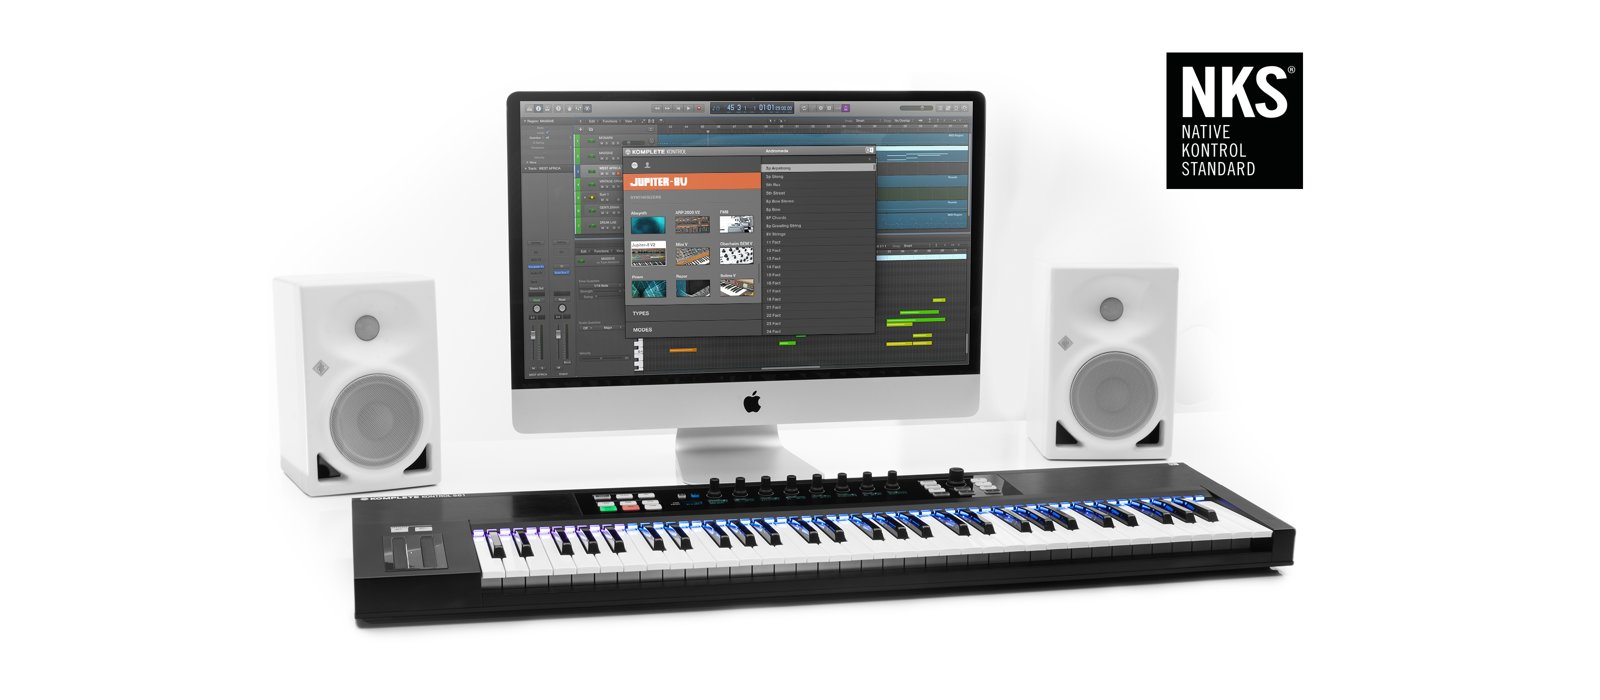 NKS - now in all Komplete Kontrol S-series keyboards and Maschine 2.x software